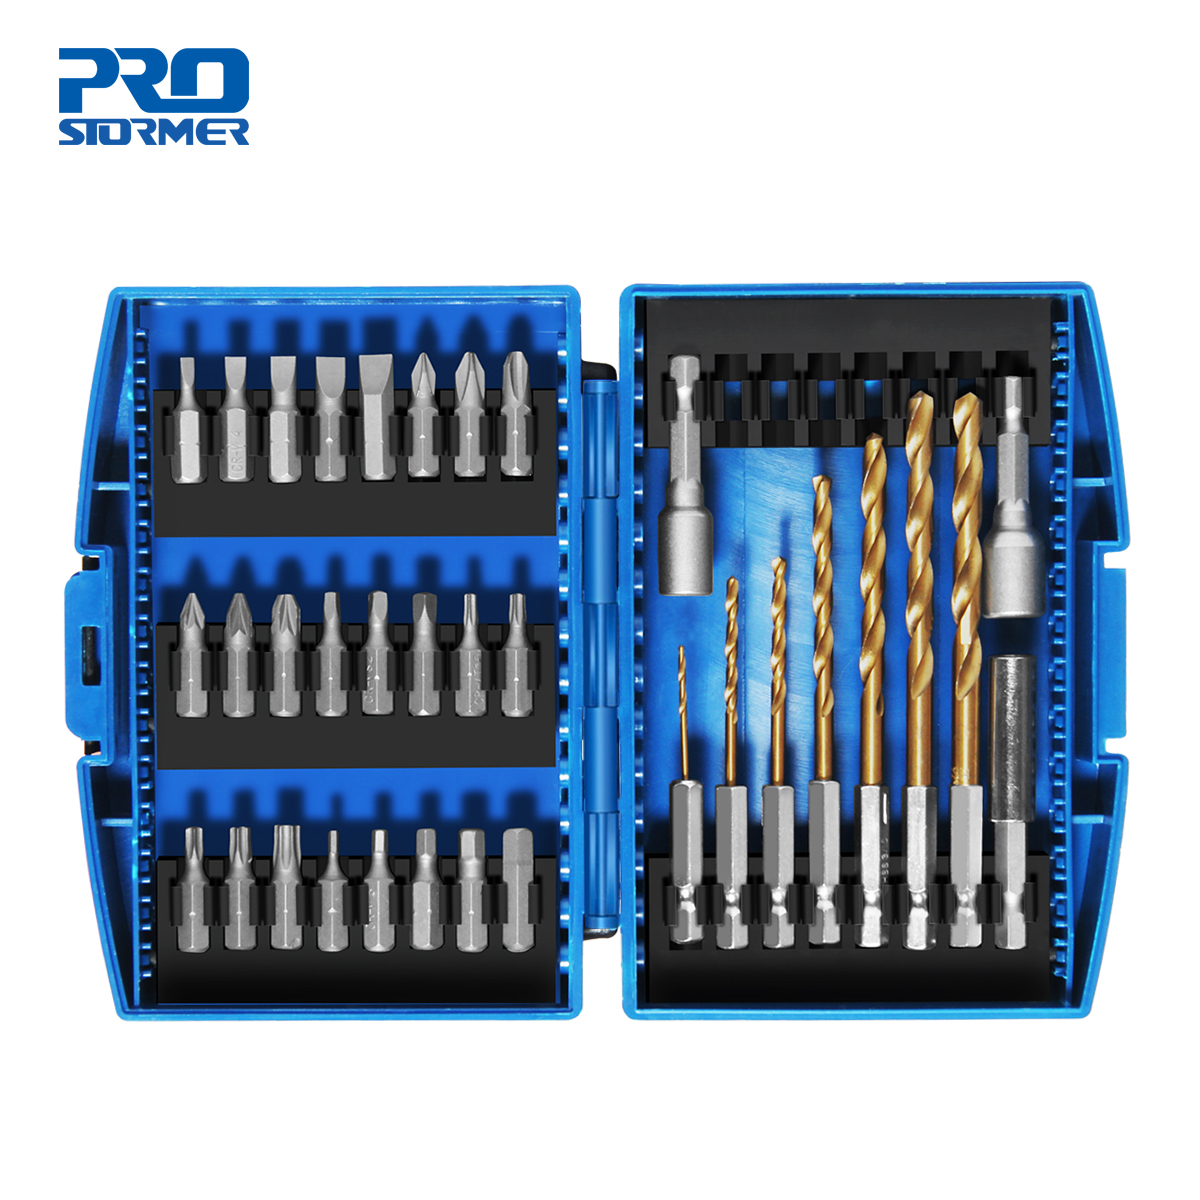 PROSTORMER 34pc Screwdriver Bit & Nut Driver Set Phillips/Slotted Bits With Magnetic Multi Tool Home Appliances Repair Hand Tool